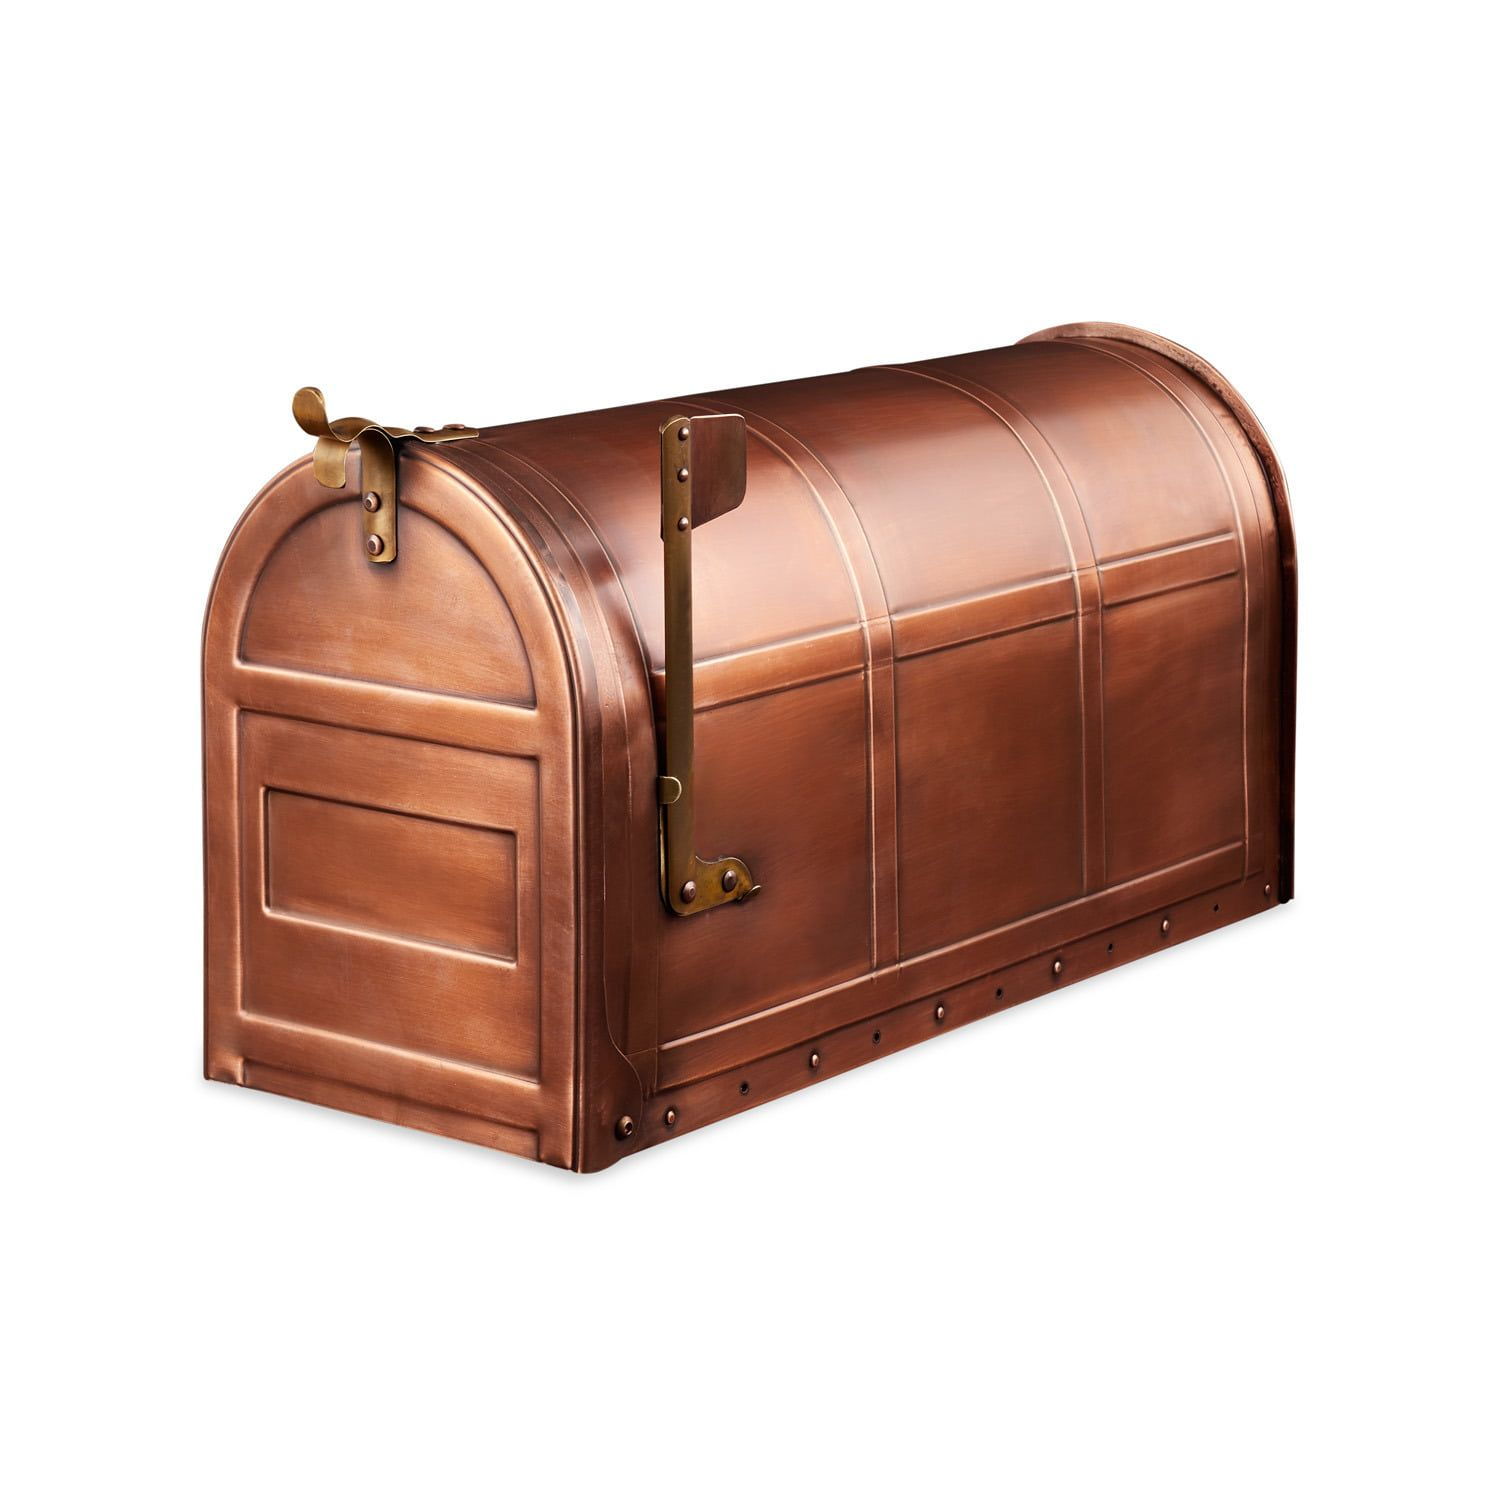 The Integrated Bands Of This Copper Post Mount Mailbox Give It A Subtle Decorative Touch The Large Holding Area In B Copper Mailbox Post Mount Mounted Mailbox